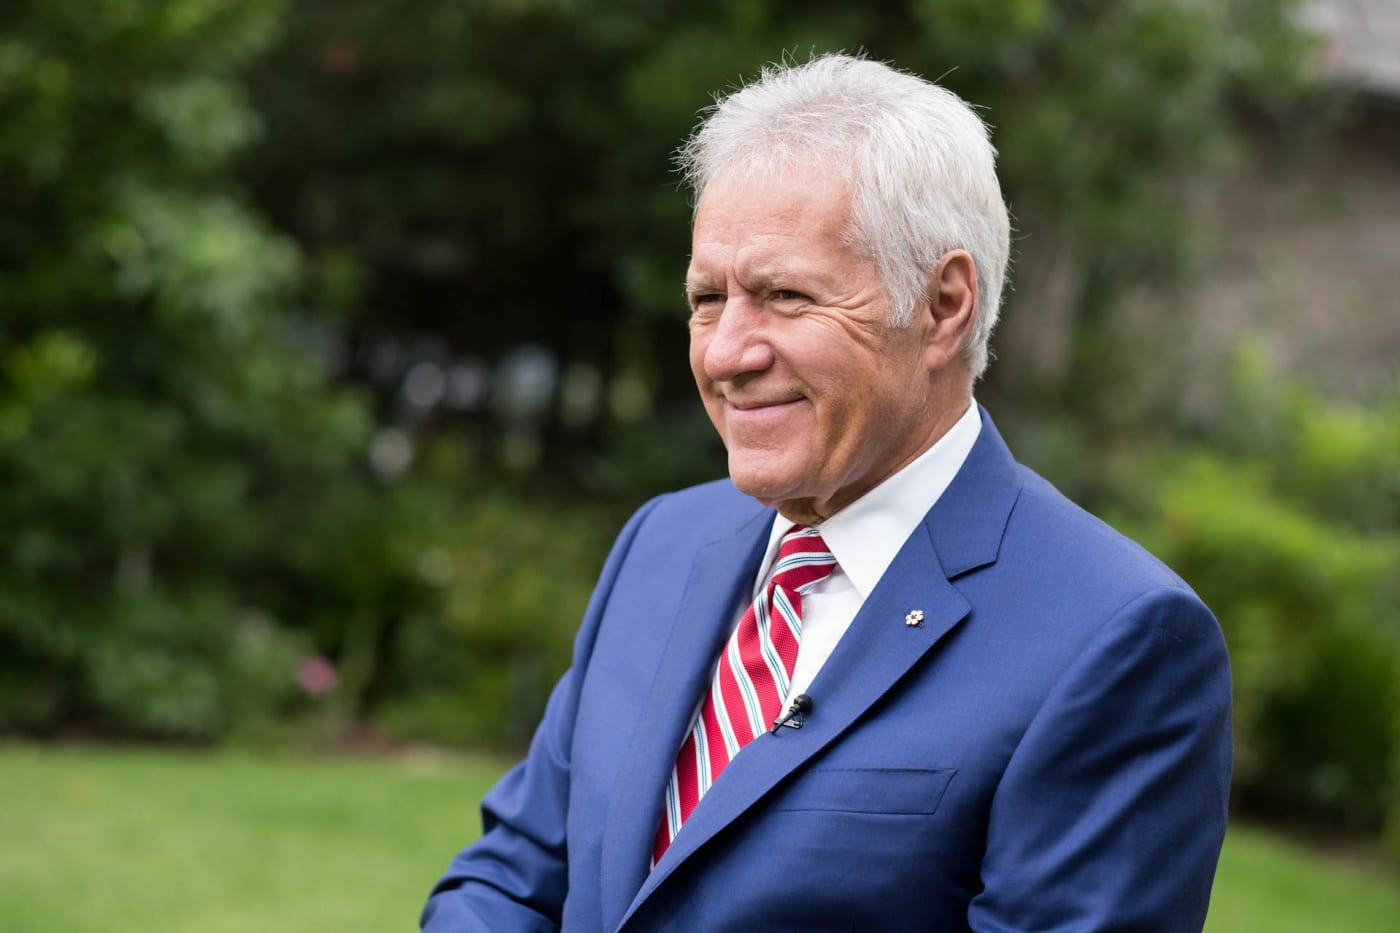 Alex Trebek attends 150th anniversary of Canada's Confederation at the Official Residence of Canada.